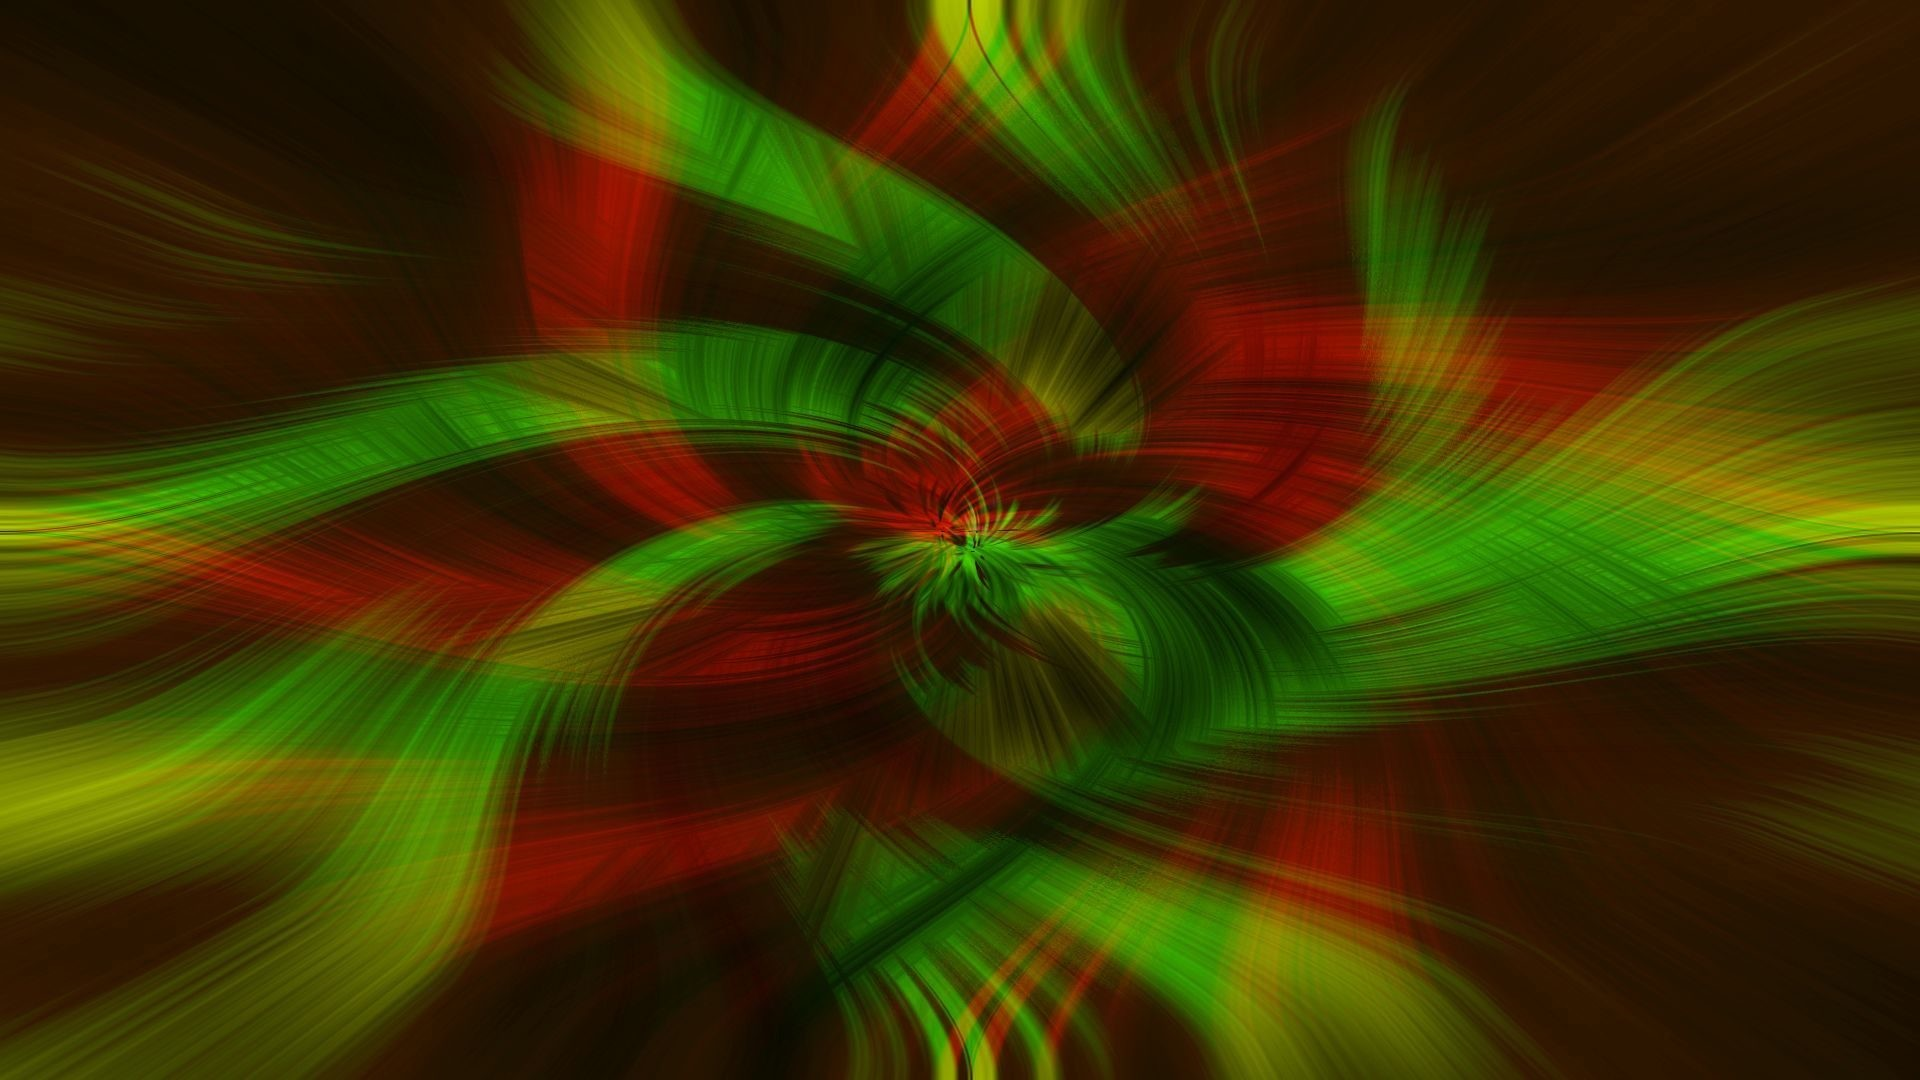 red and green shaped lines abstract hd wallpaper 1920×1080 11572. ««